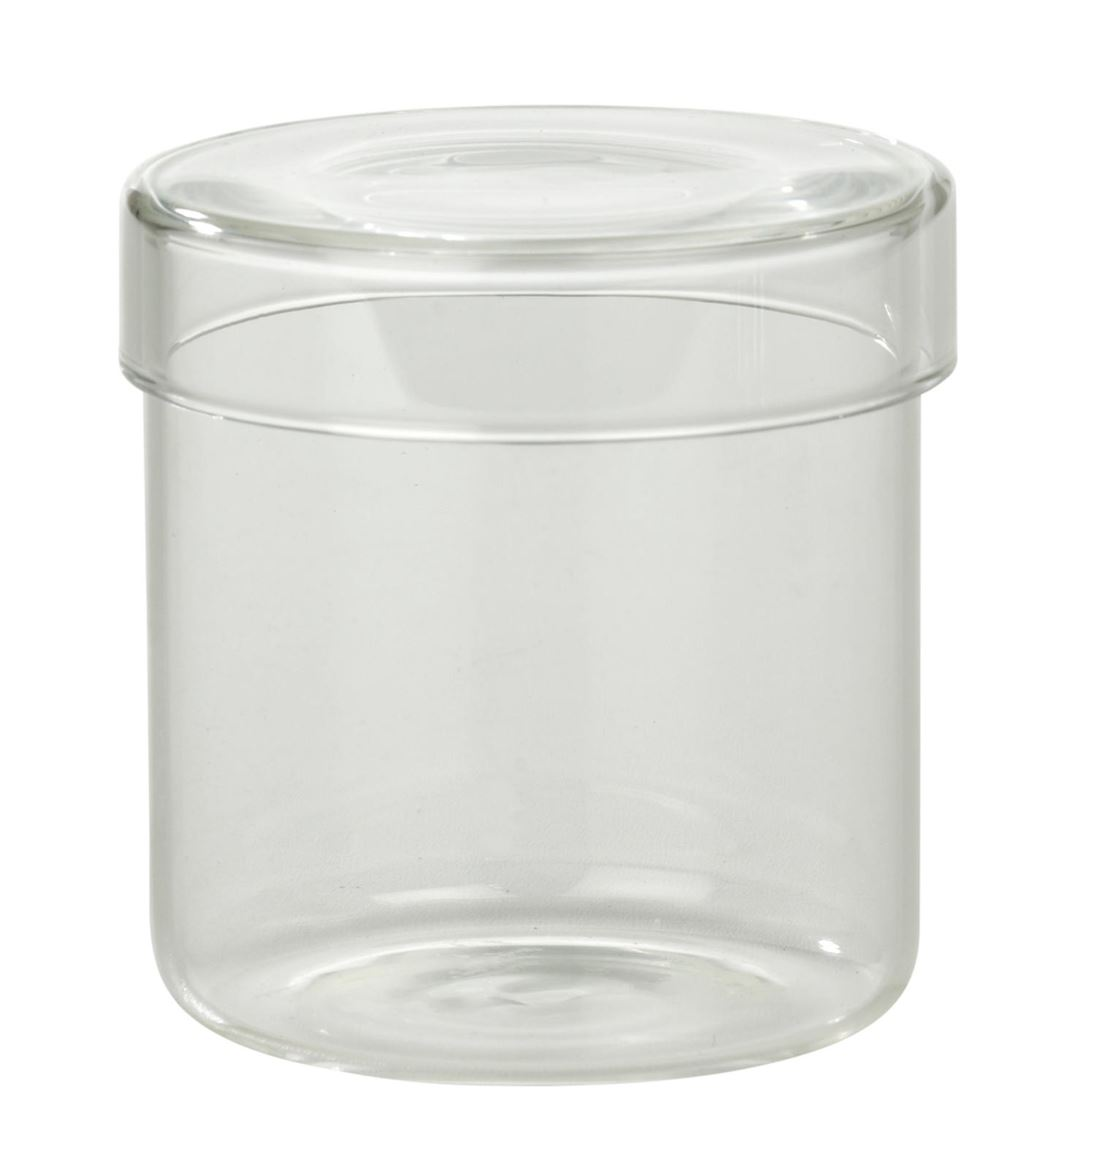 PURI Pot décoratif transparent H 8 cm; Ø 8 cm_puri-pot-décoratif-transparent-h-8-cm;-ø-8-cm